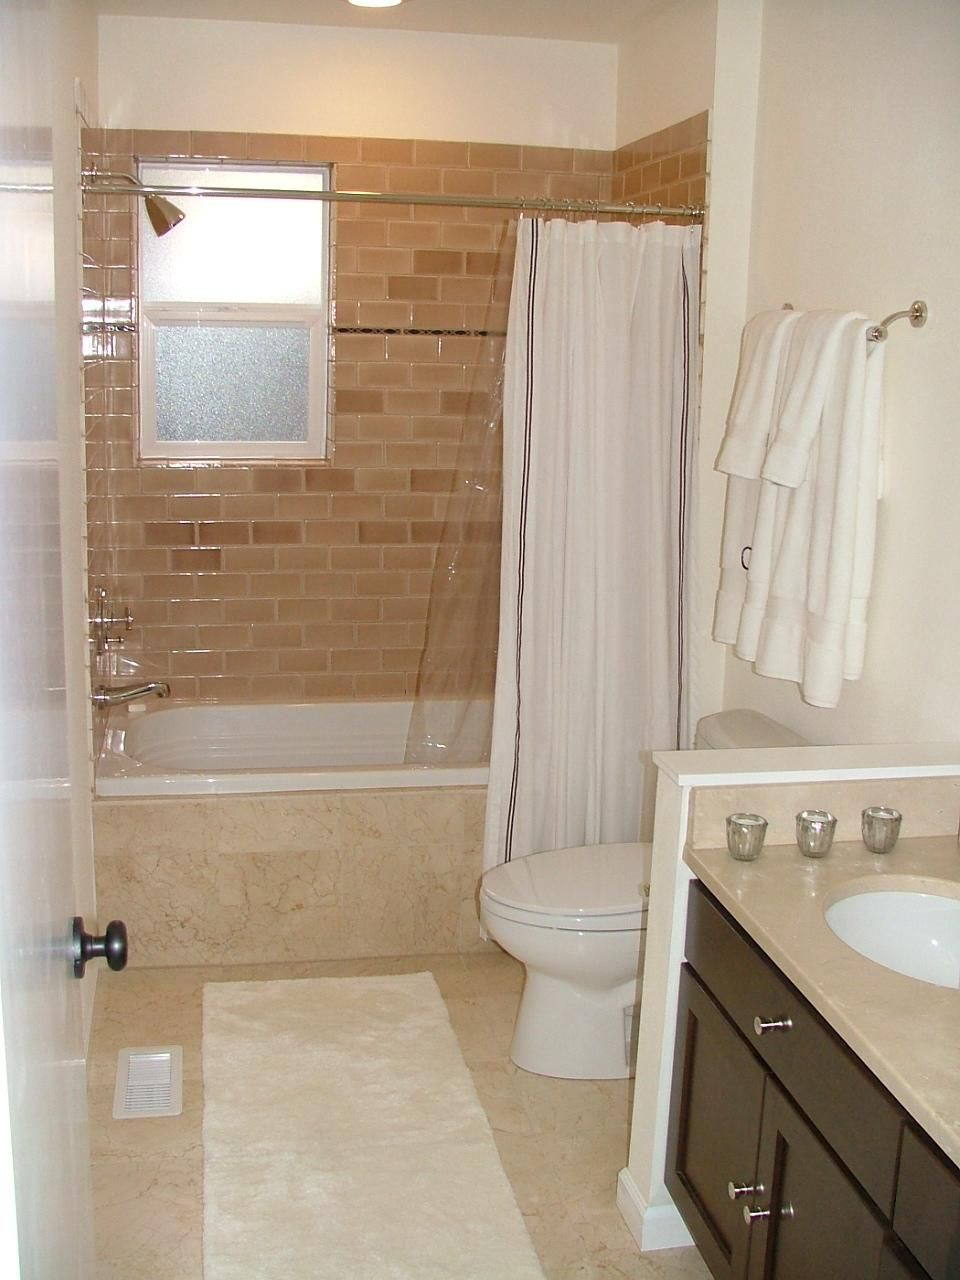 small bathrooms are less expensive to remodel compared with a main but the values